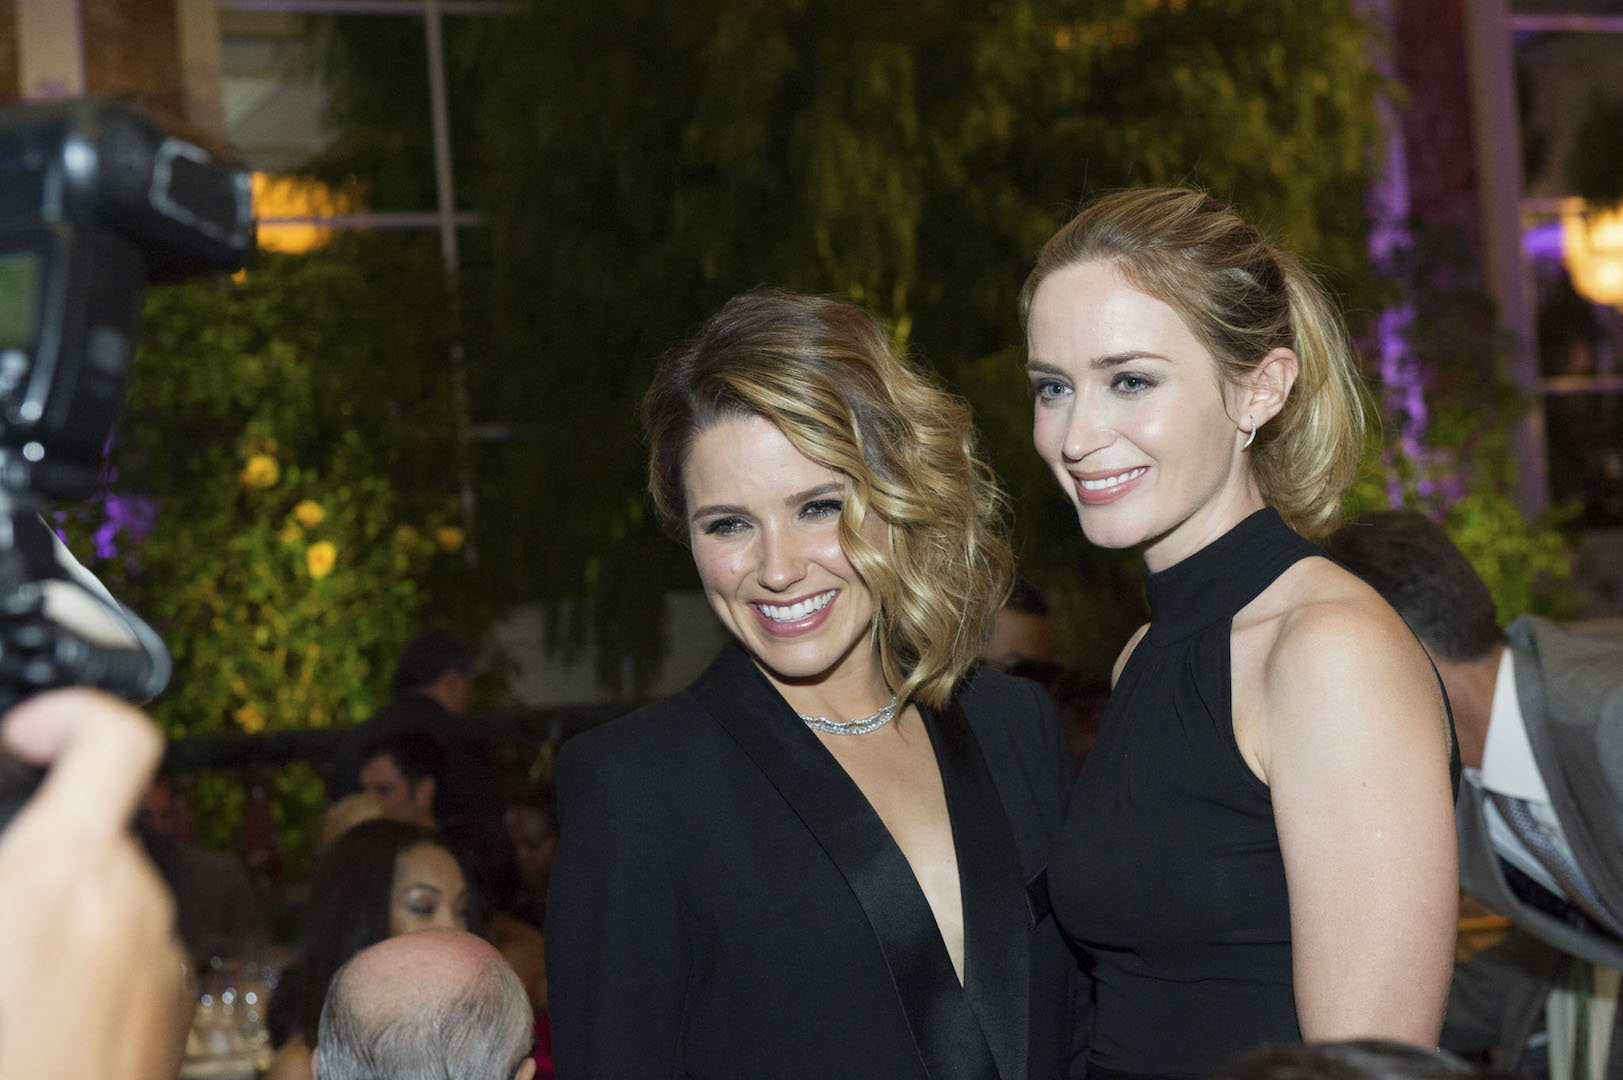 Beverly Hills, CA. August 13, 2015 Hollywood Foreign Press Association presents annual Grants Dinner Thursday night from the Beverly Wilshire Hotel.  The HFPA will present more than $2 million in donations to non-profit entertainment-related organizations and scholarship programs.  Pictured: Sophia Bush and Emily Blunt.